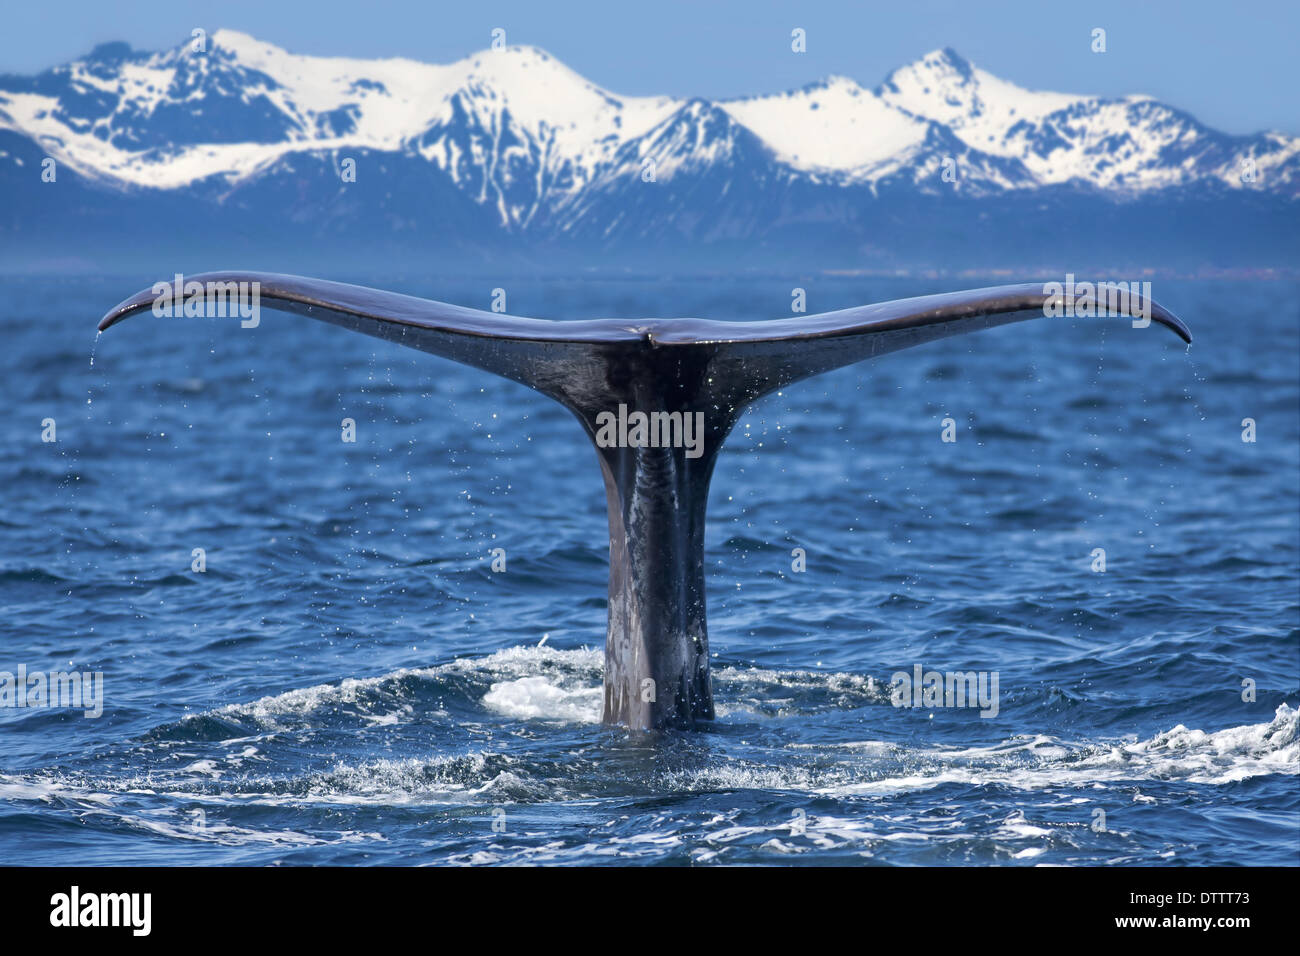 Whale tail - Stock Image